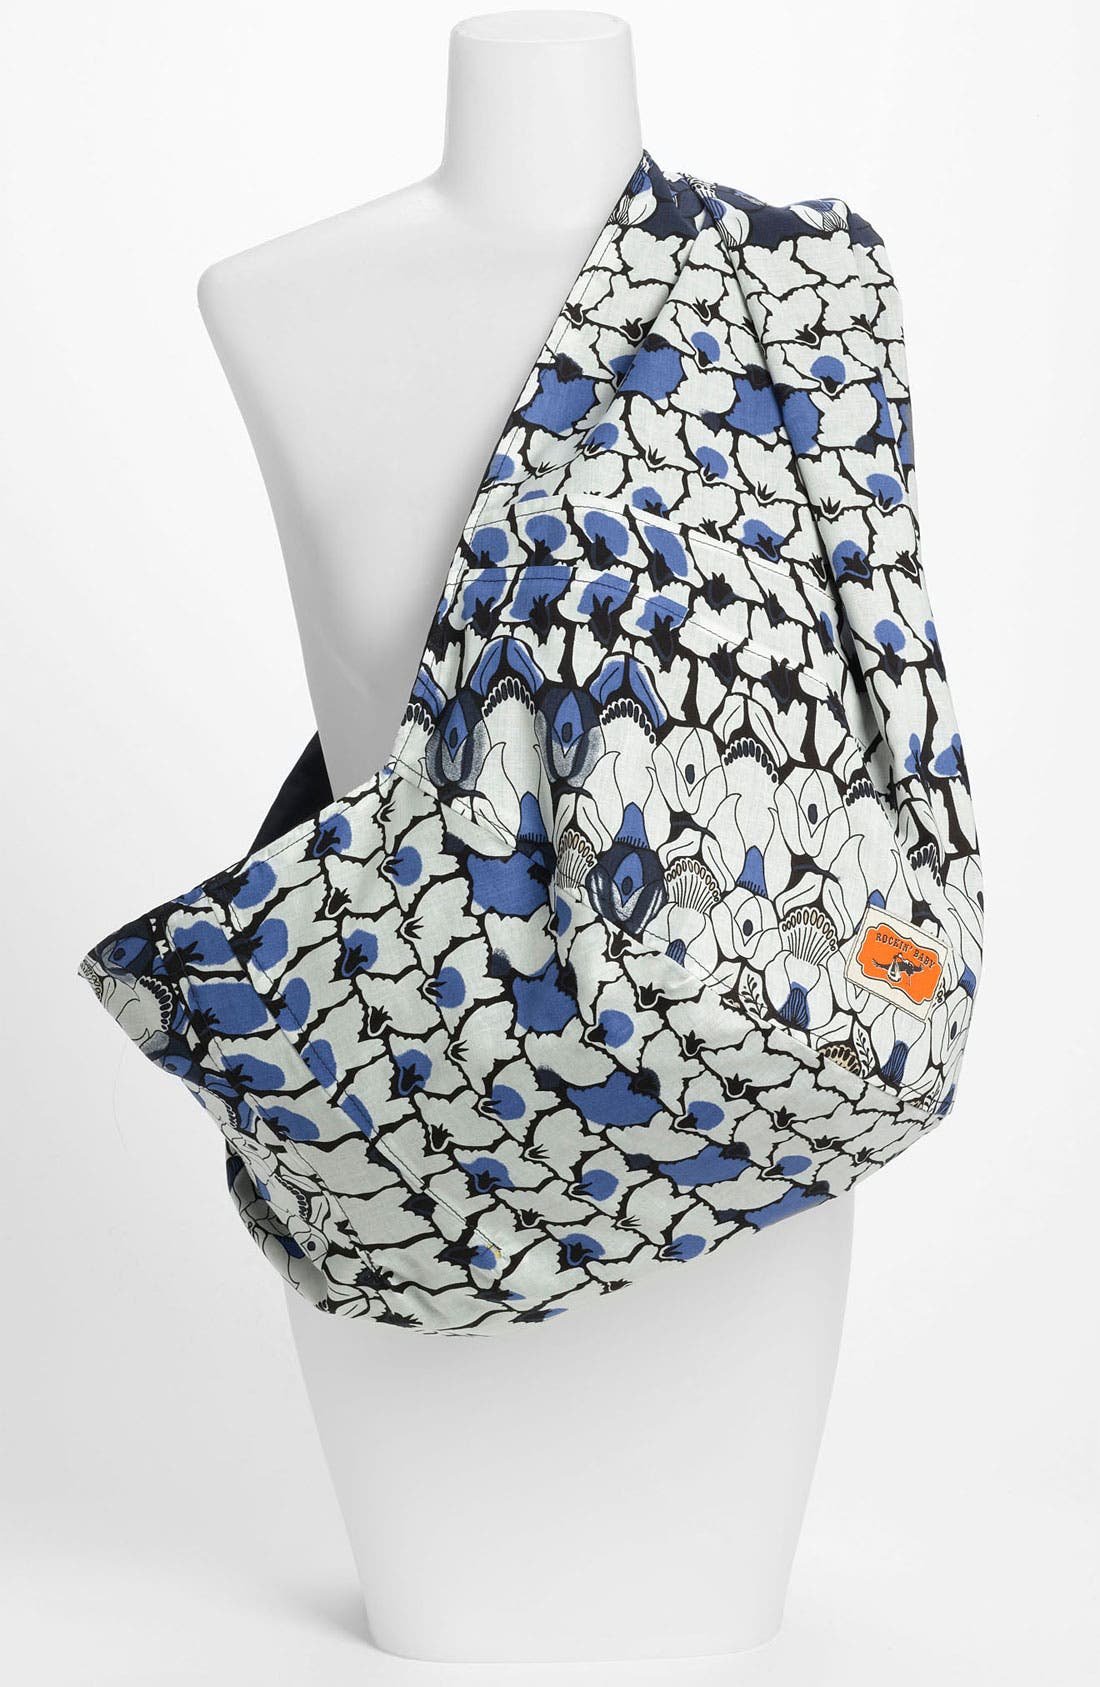 Alternate Image 1 Selected - Rockin' Baby Reversible Pouch